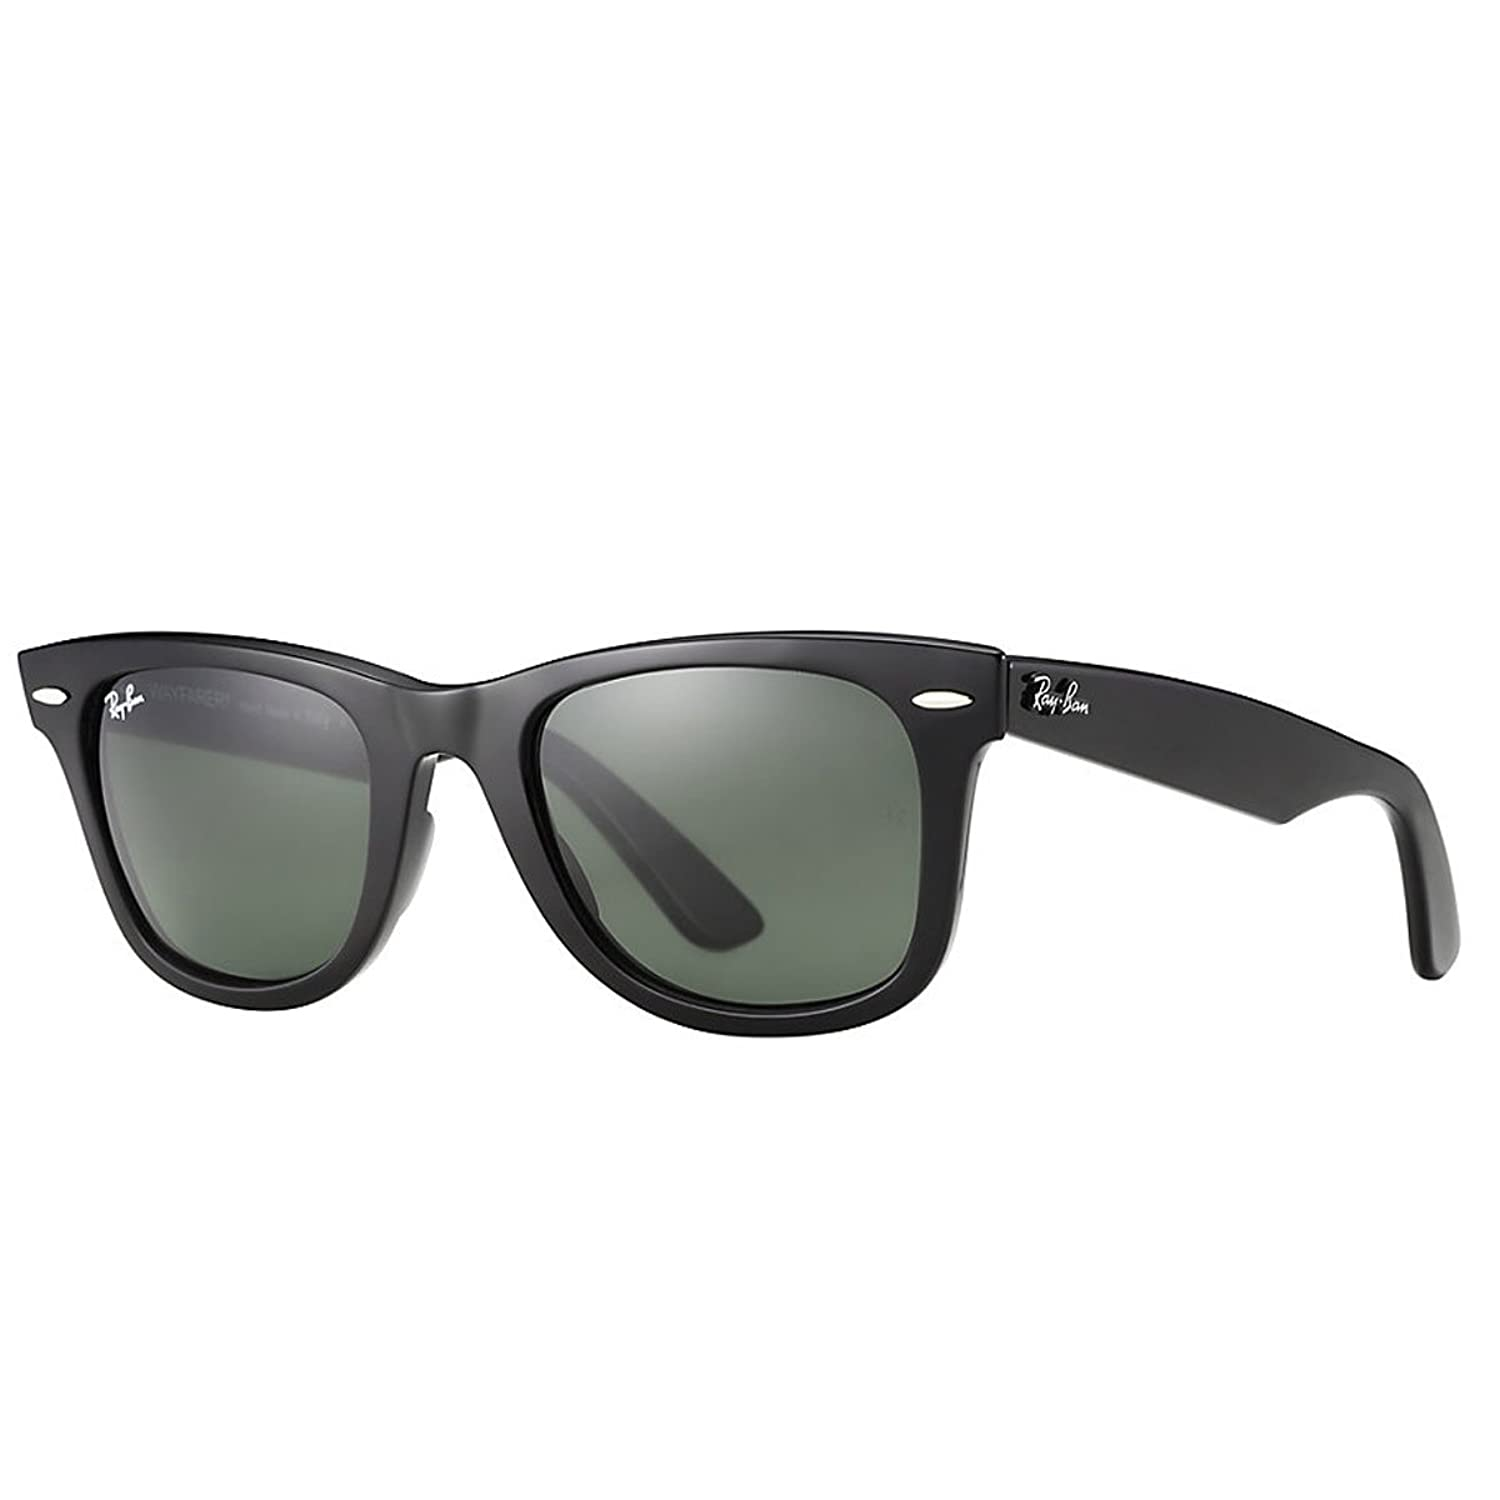 authentic ray ban sunglasses for sale  ray ban rb2140 original wayfarer sunglasses